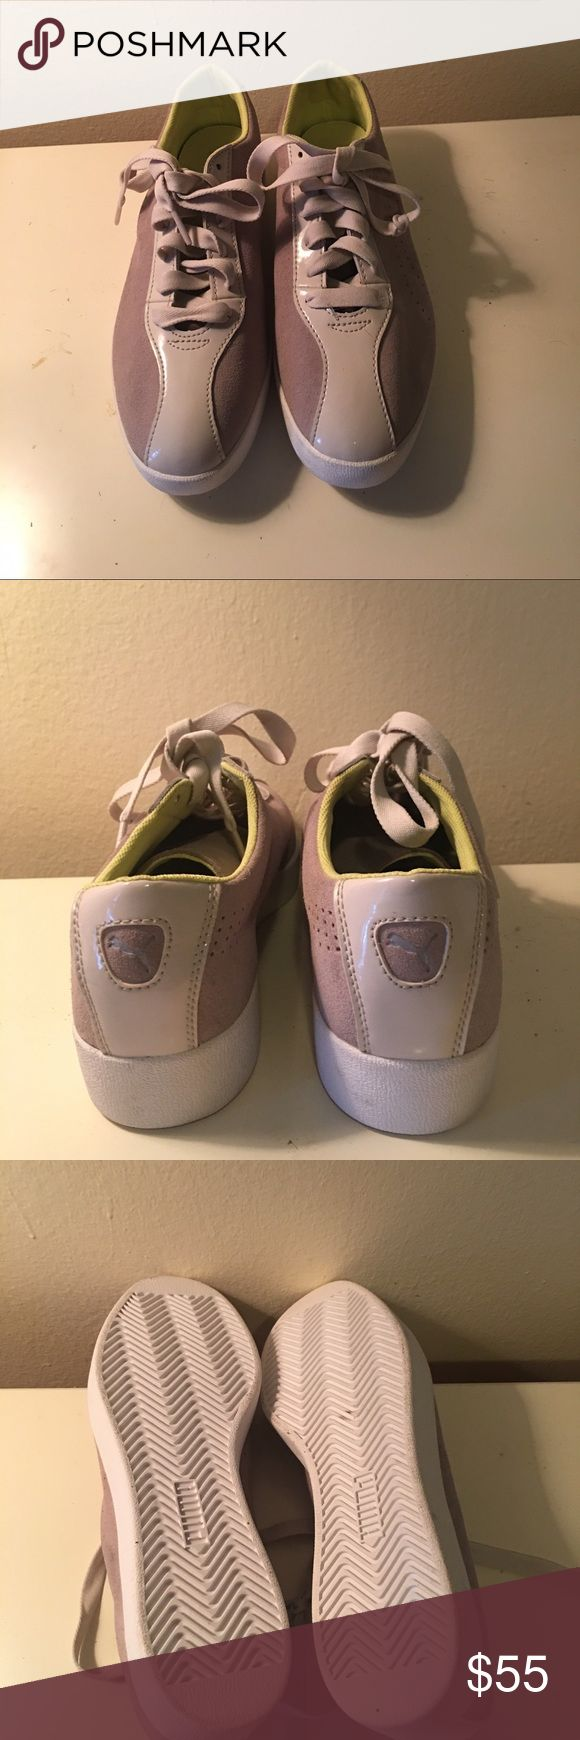 Puma sport lifestyle sneakers New, never worn, light grey suede shoes. Puma Shoes Athletic Shoes